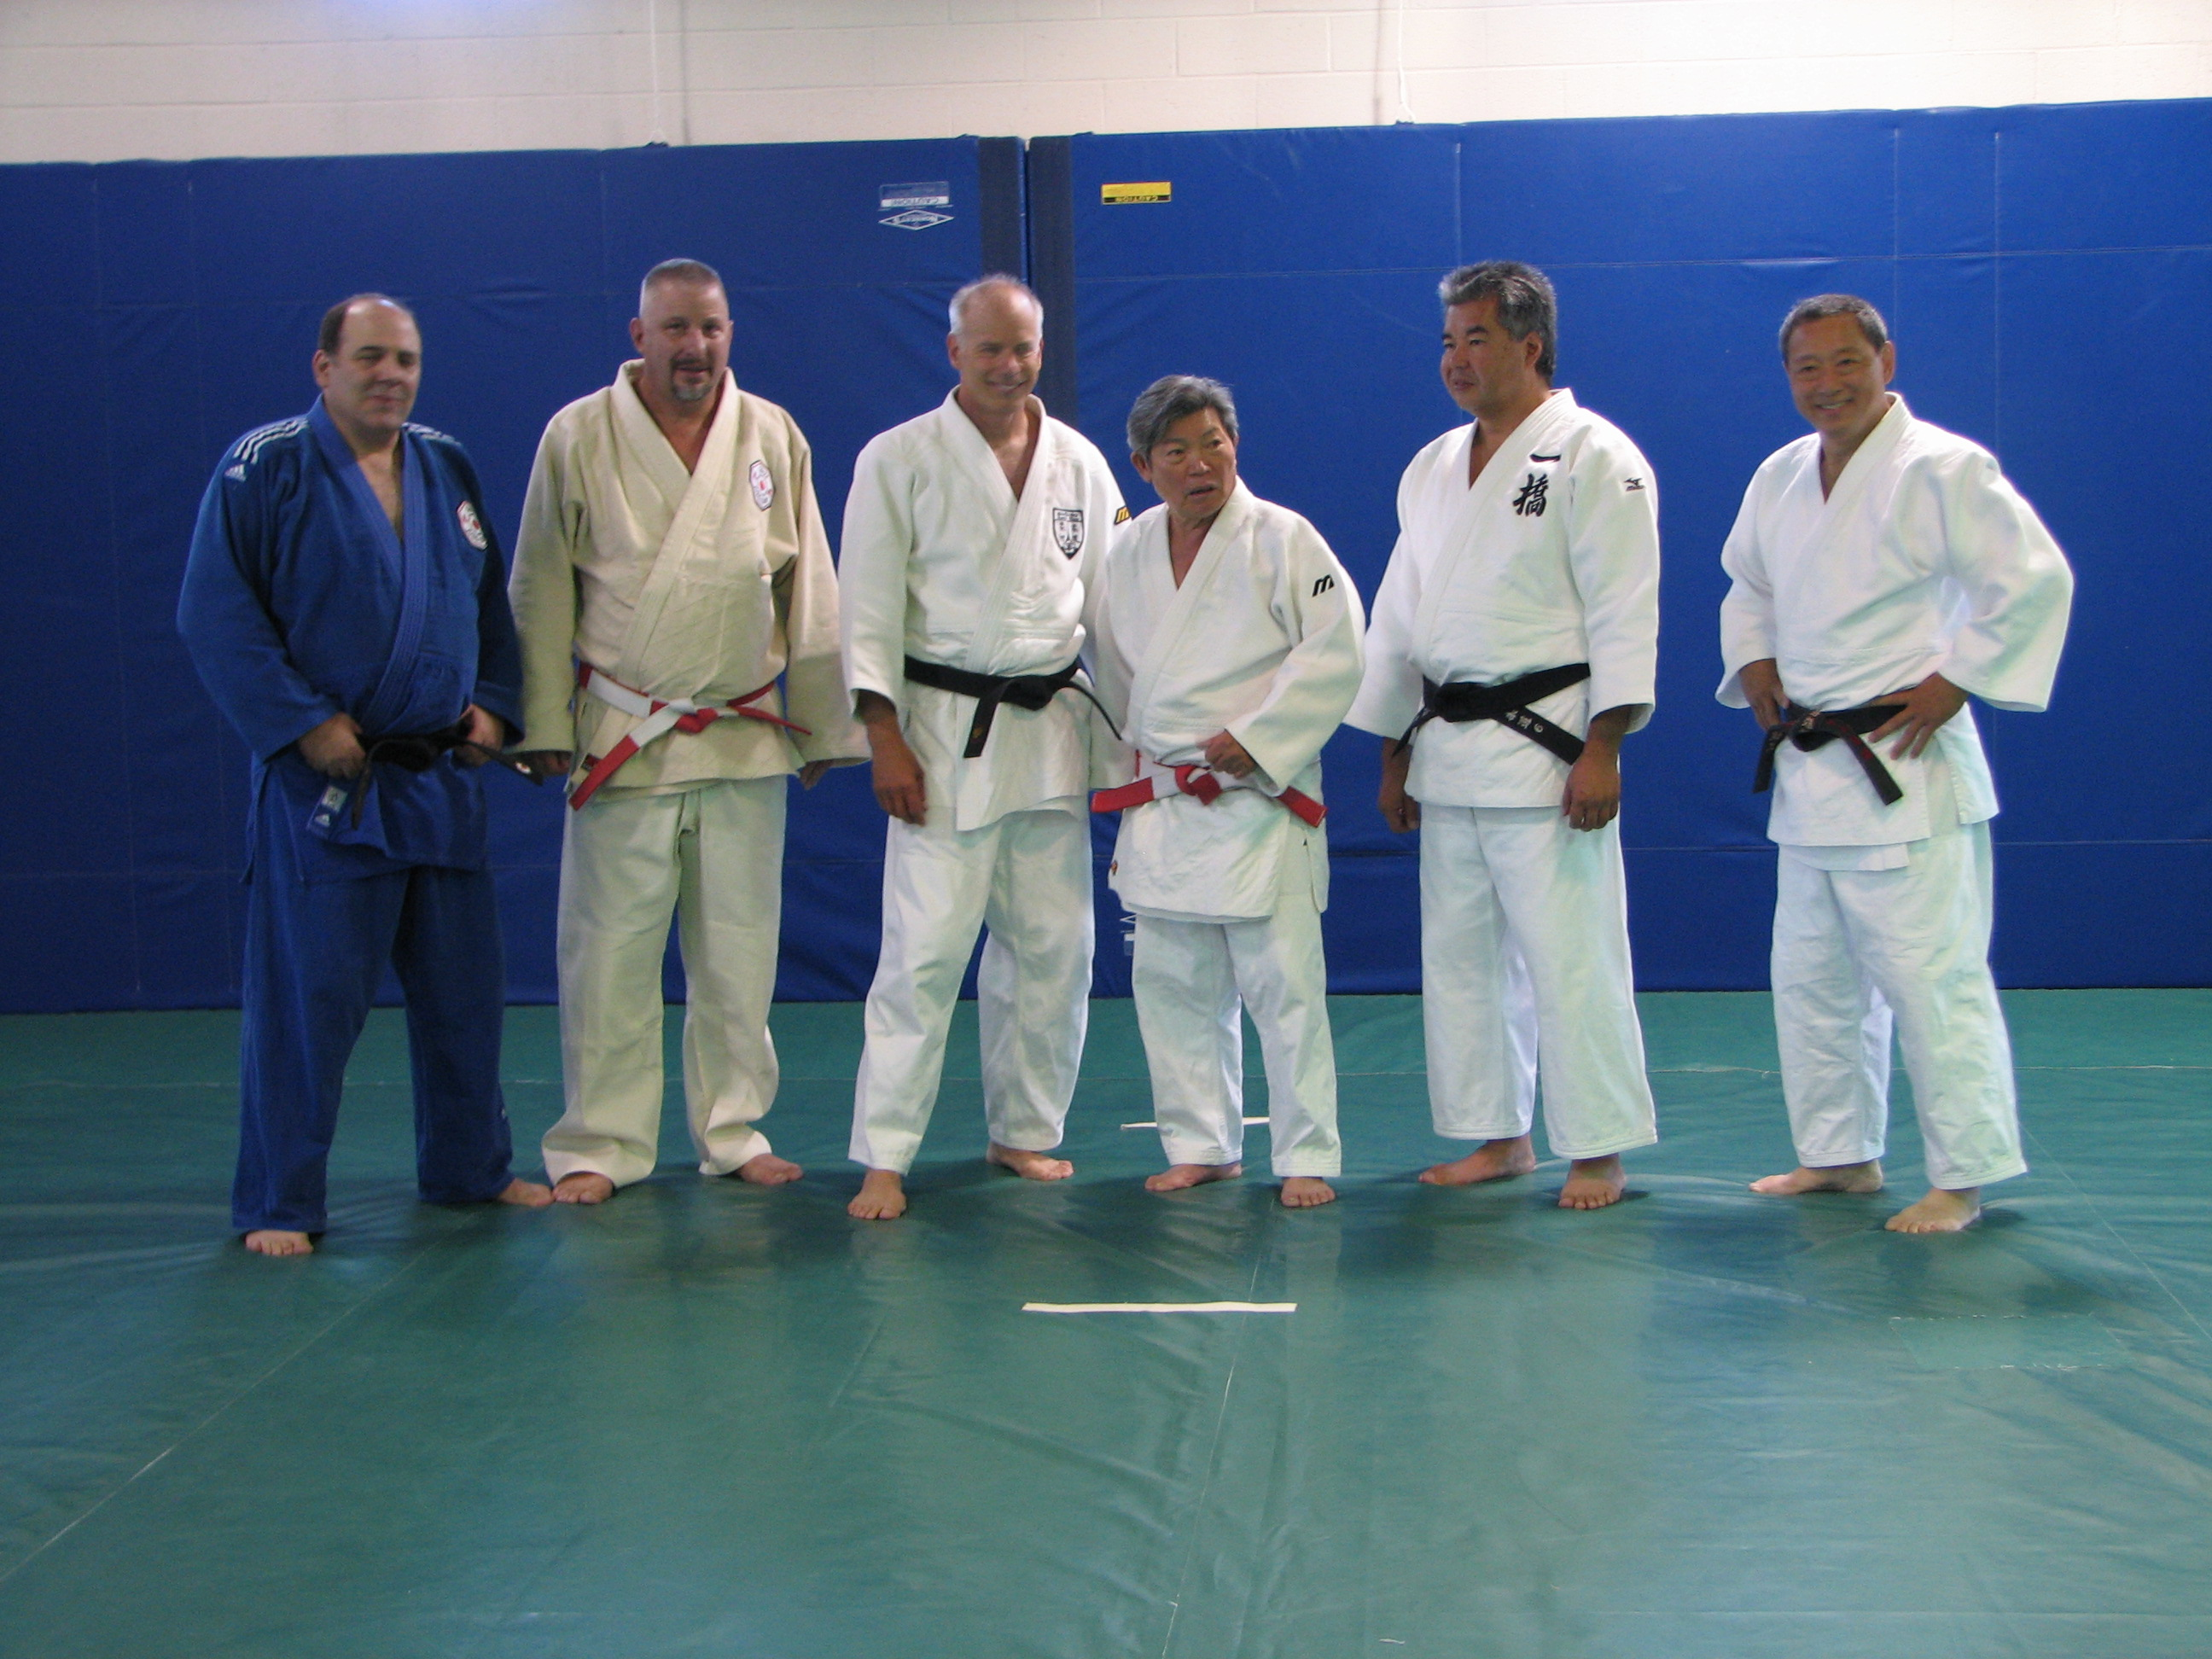 High dans attending the clinic -- Gary Goltz, Terry Kelly, Neil Ohlenkamp, Jin Iizumi, Paul Nogaki, Kenji Osugi